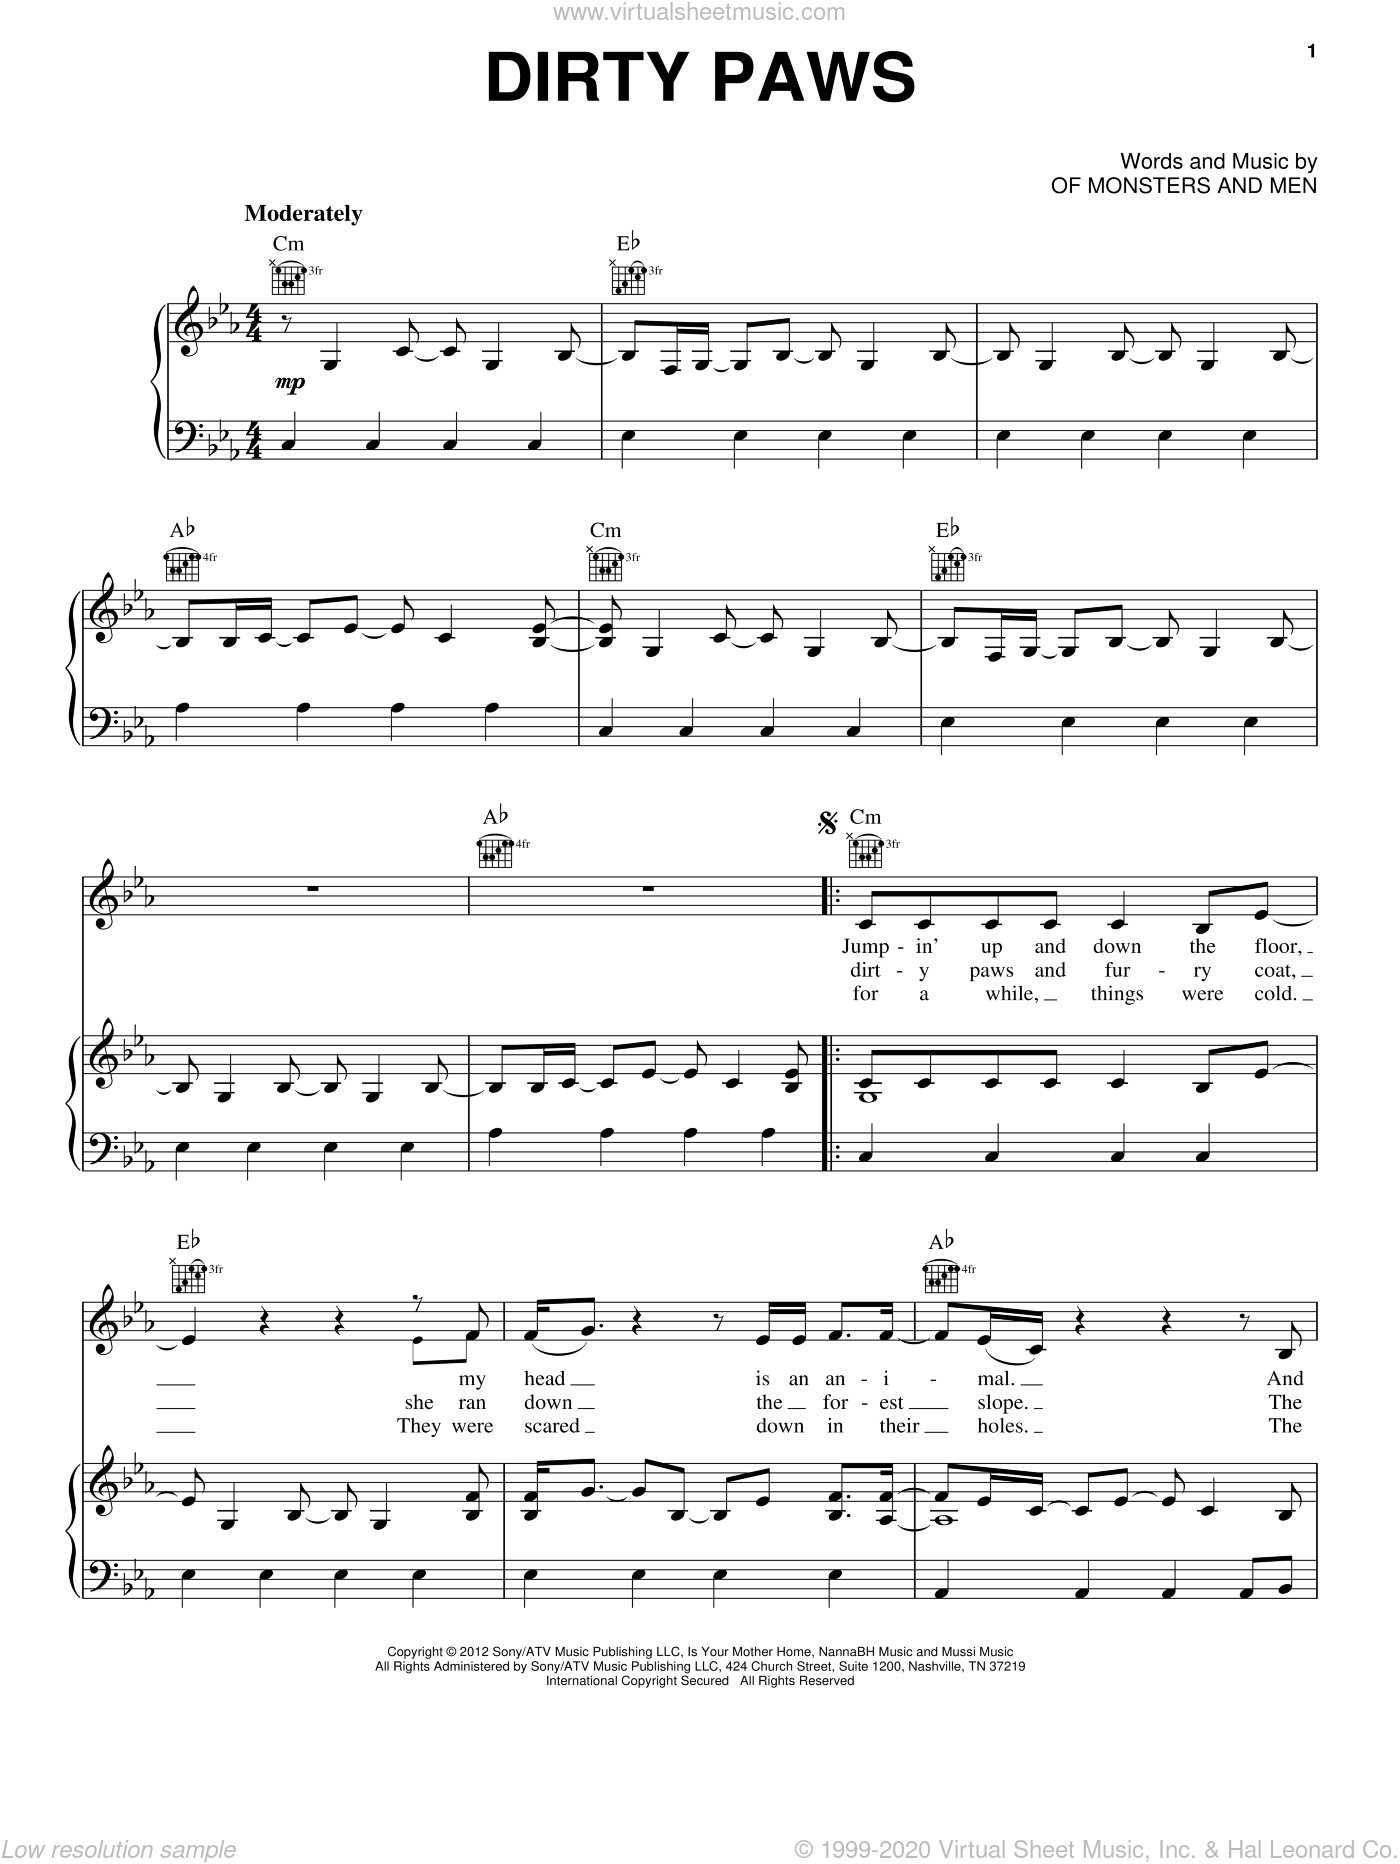 Dirty Paws sheet music for voice, piano or guitar by Of Monsters And Men. Score Image Preview.